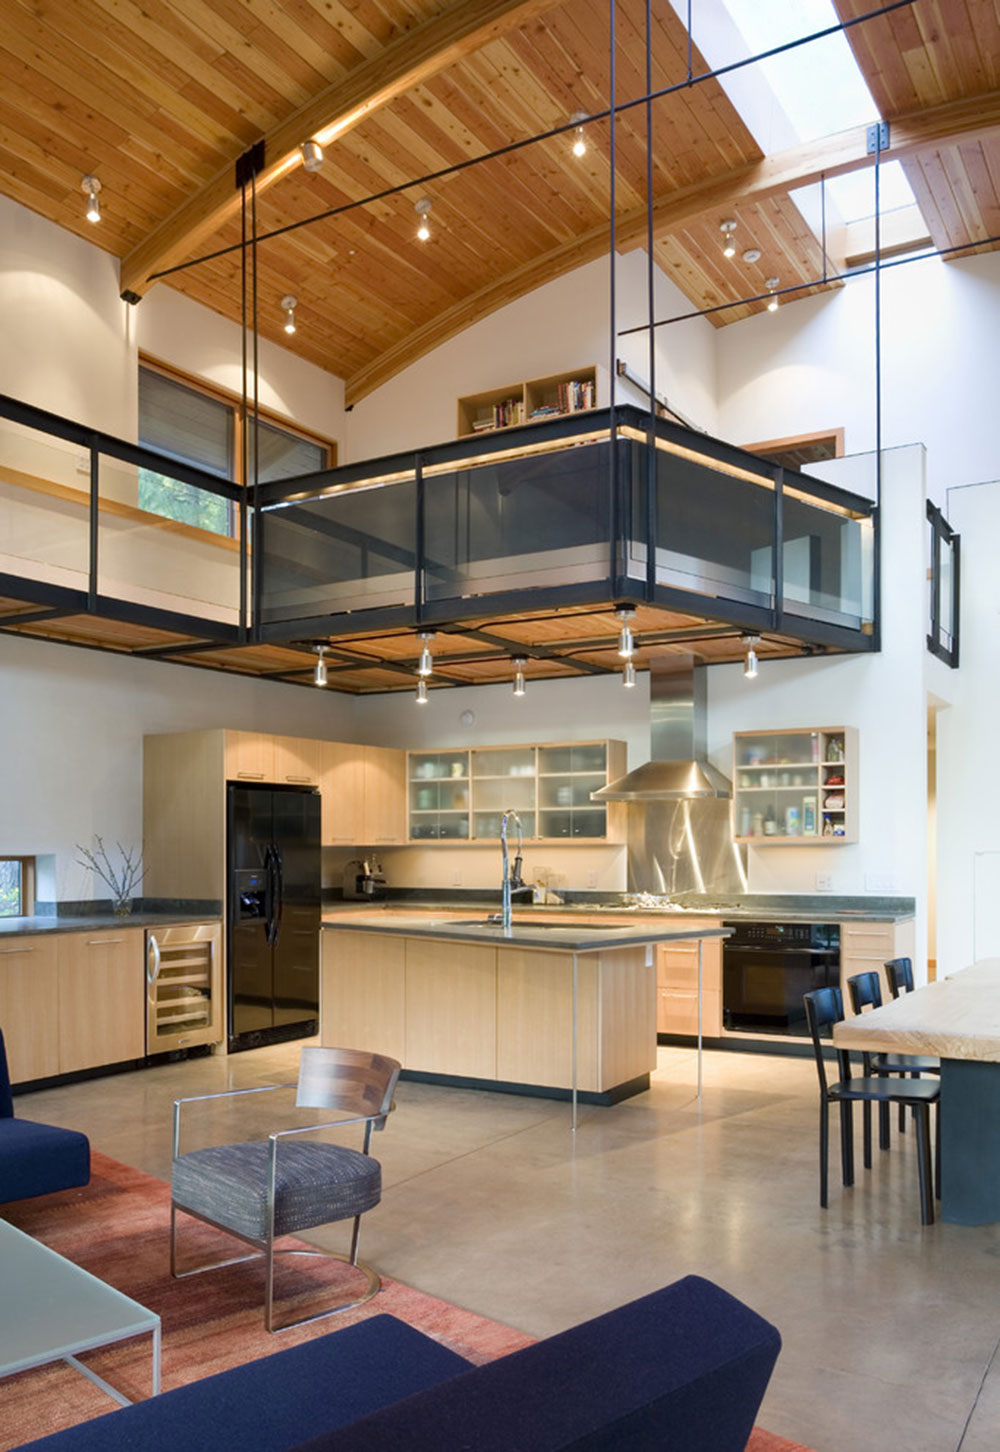 Useful tips for designing a loft6 Useful tips for designing a loft